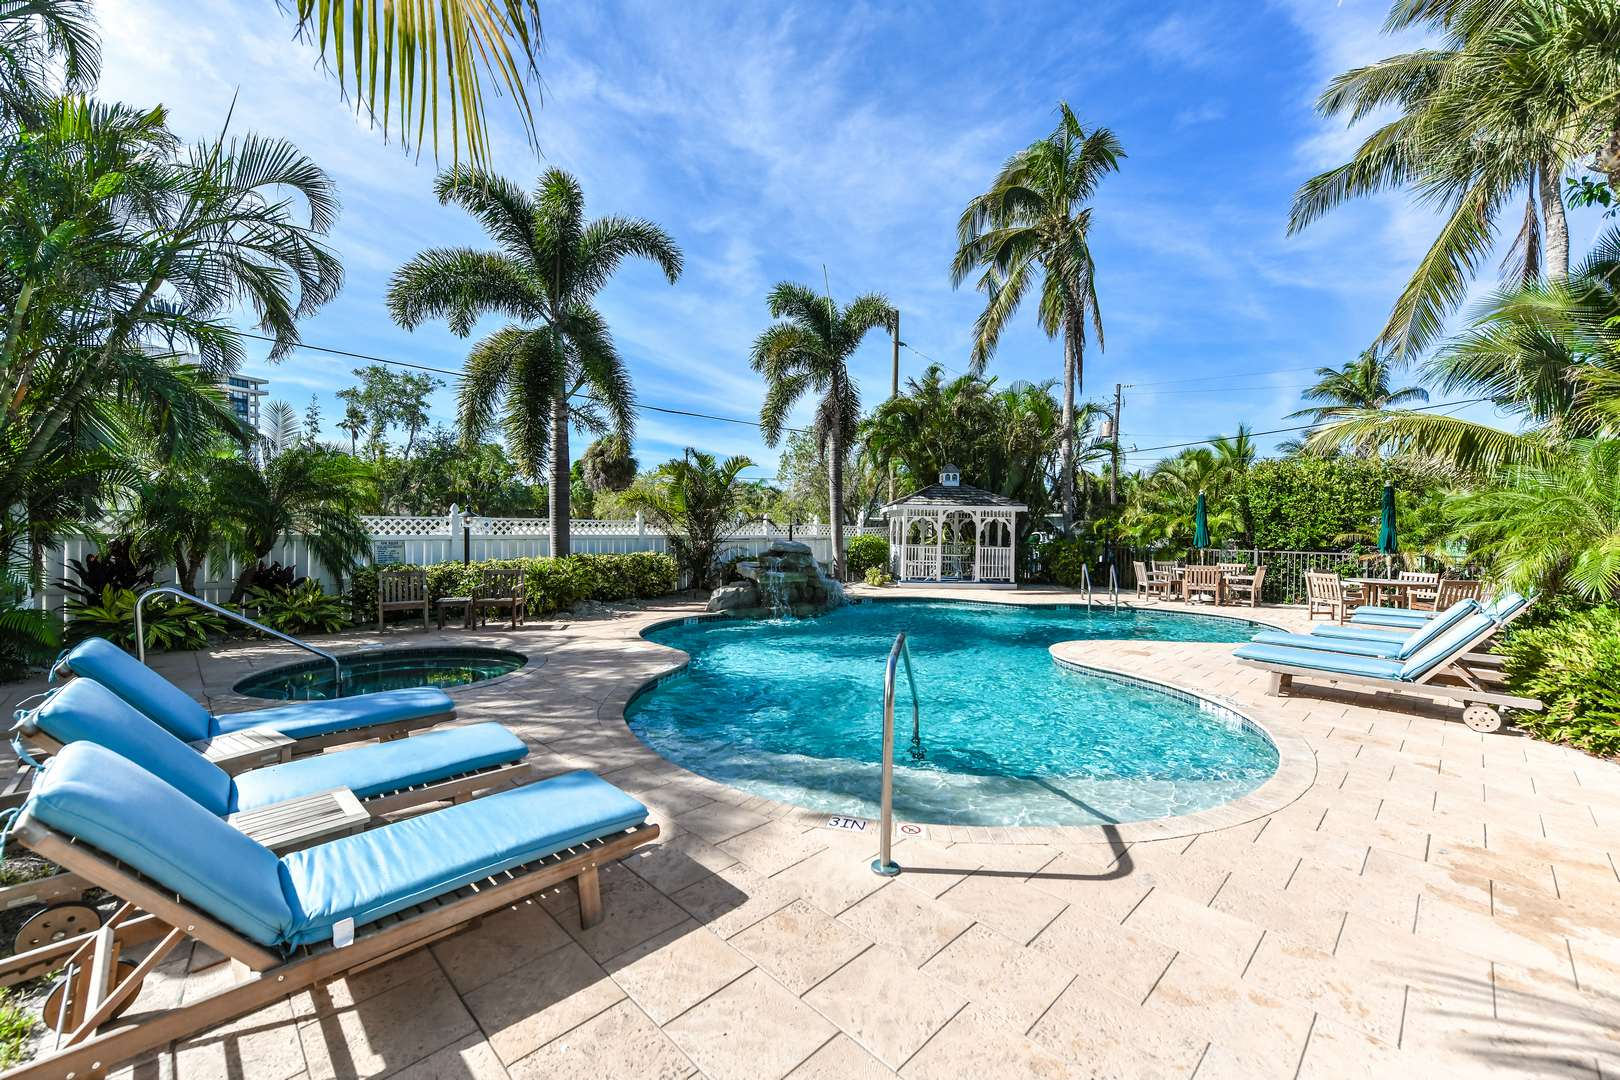 The Keys House Pool and Spa